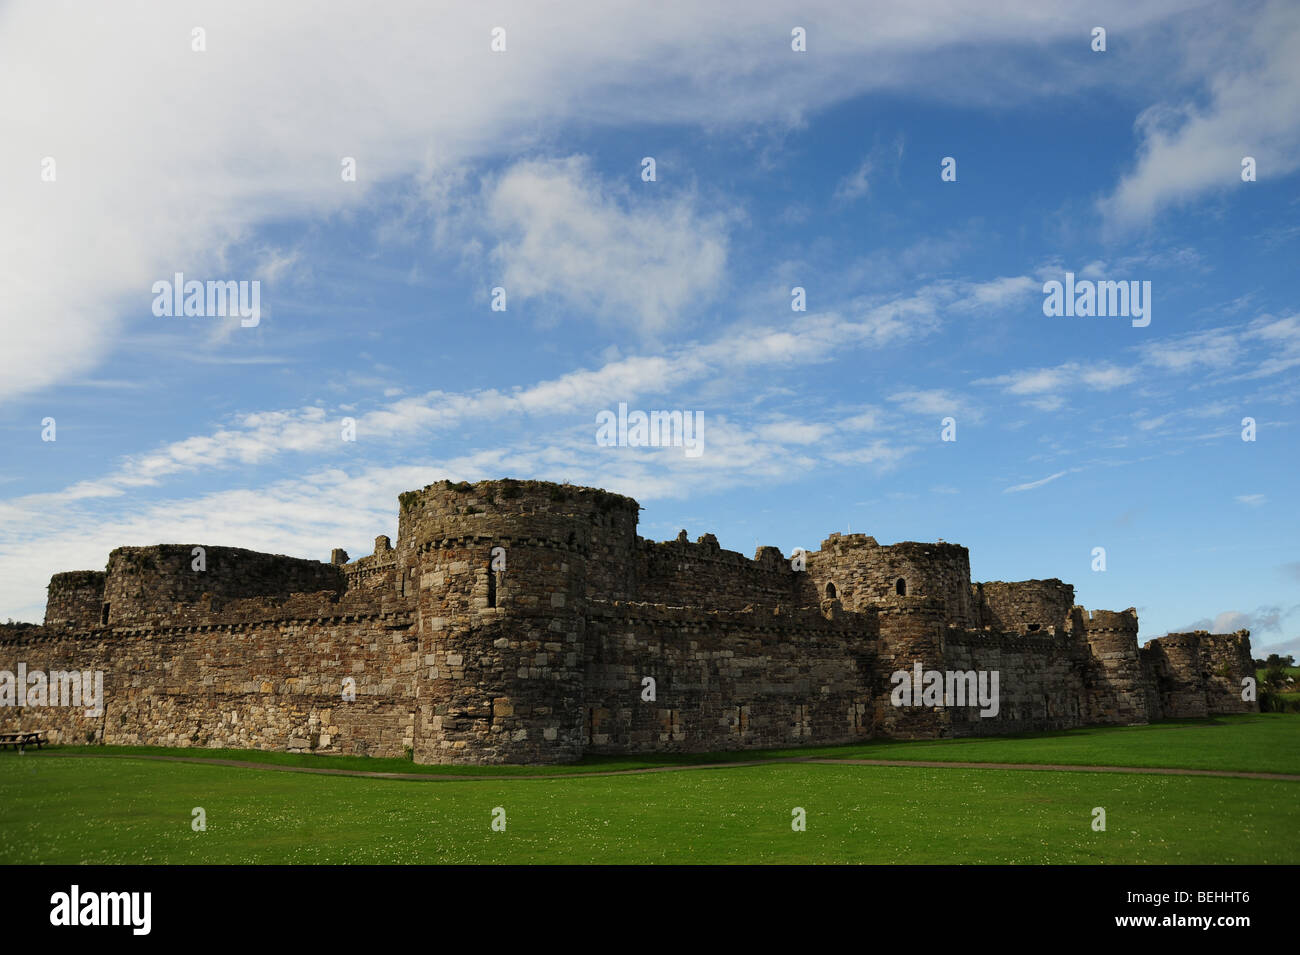 Beaumaris Castle - Stock Image